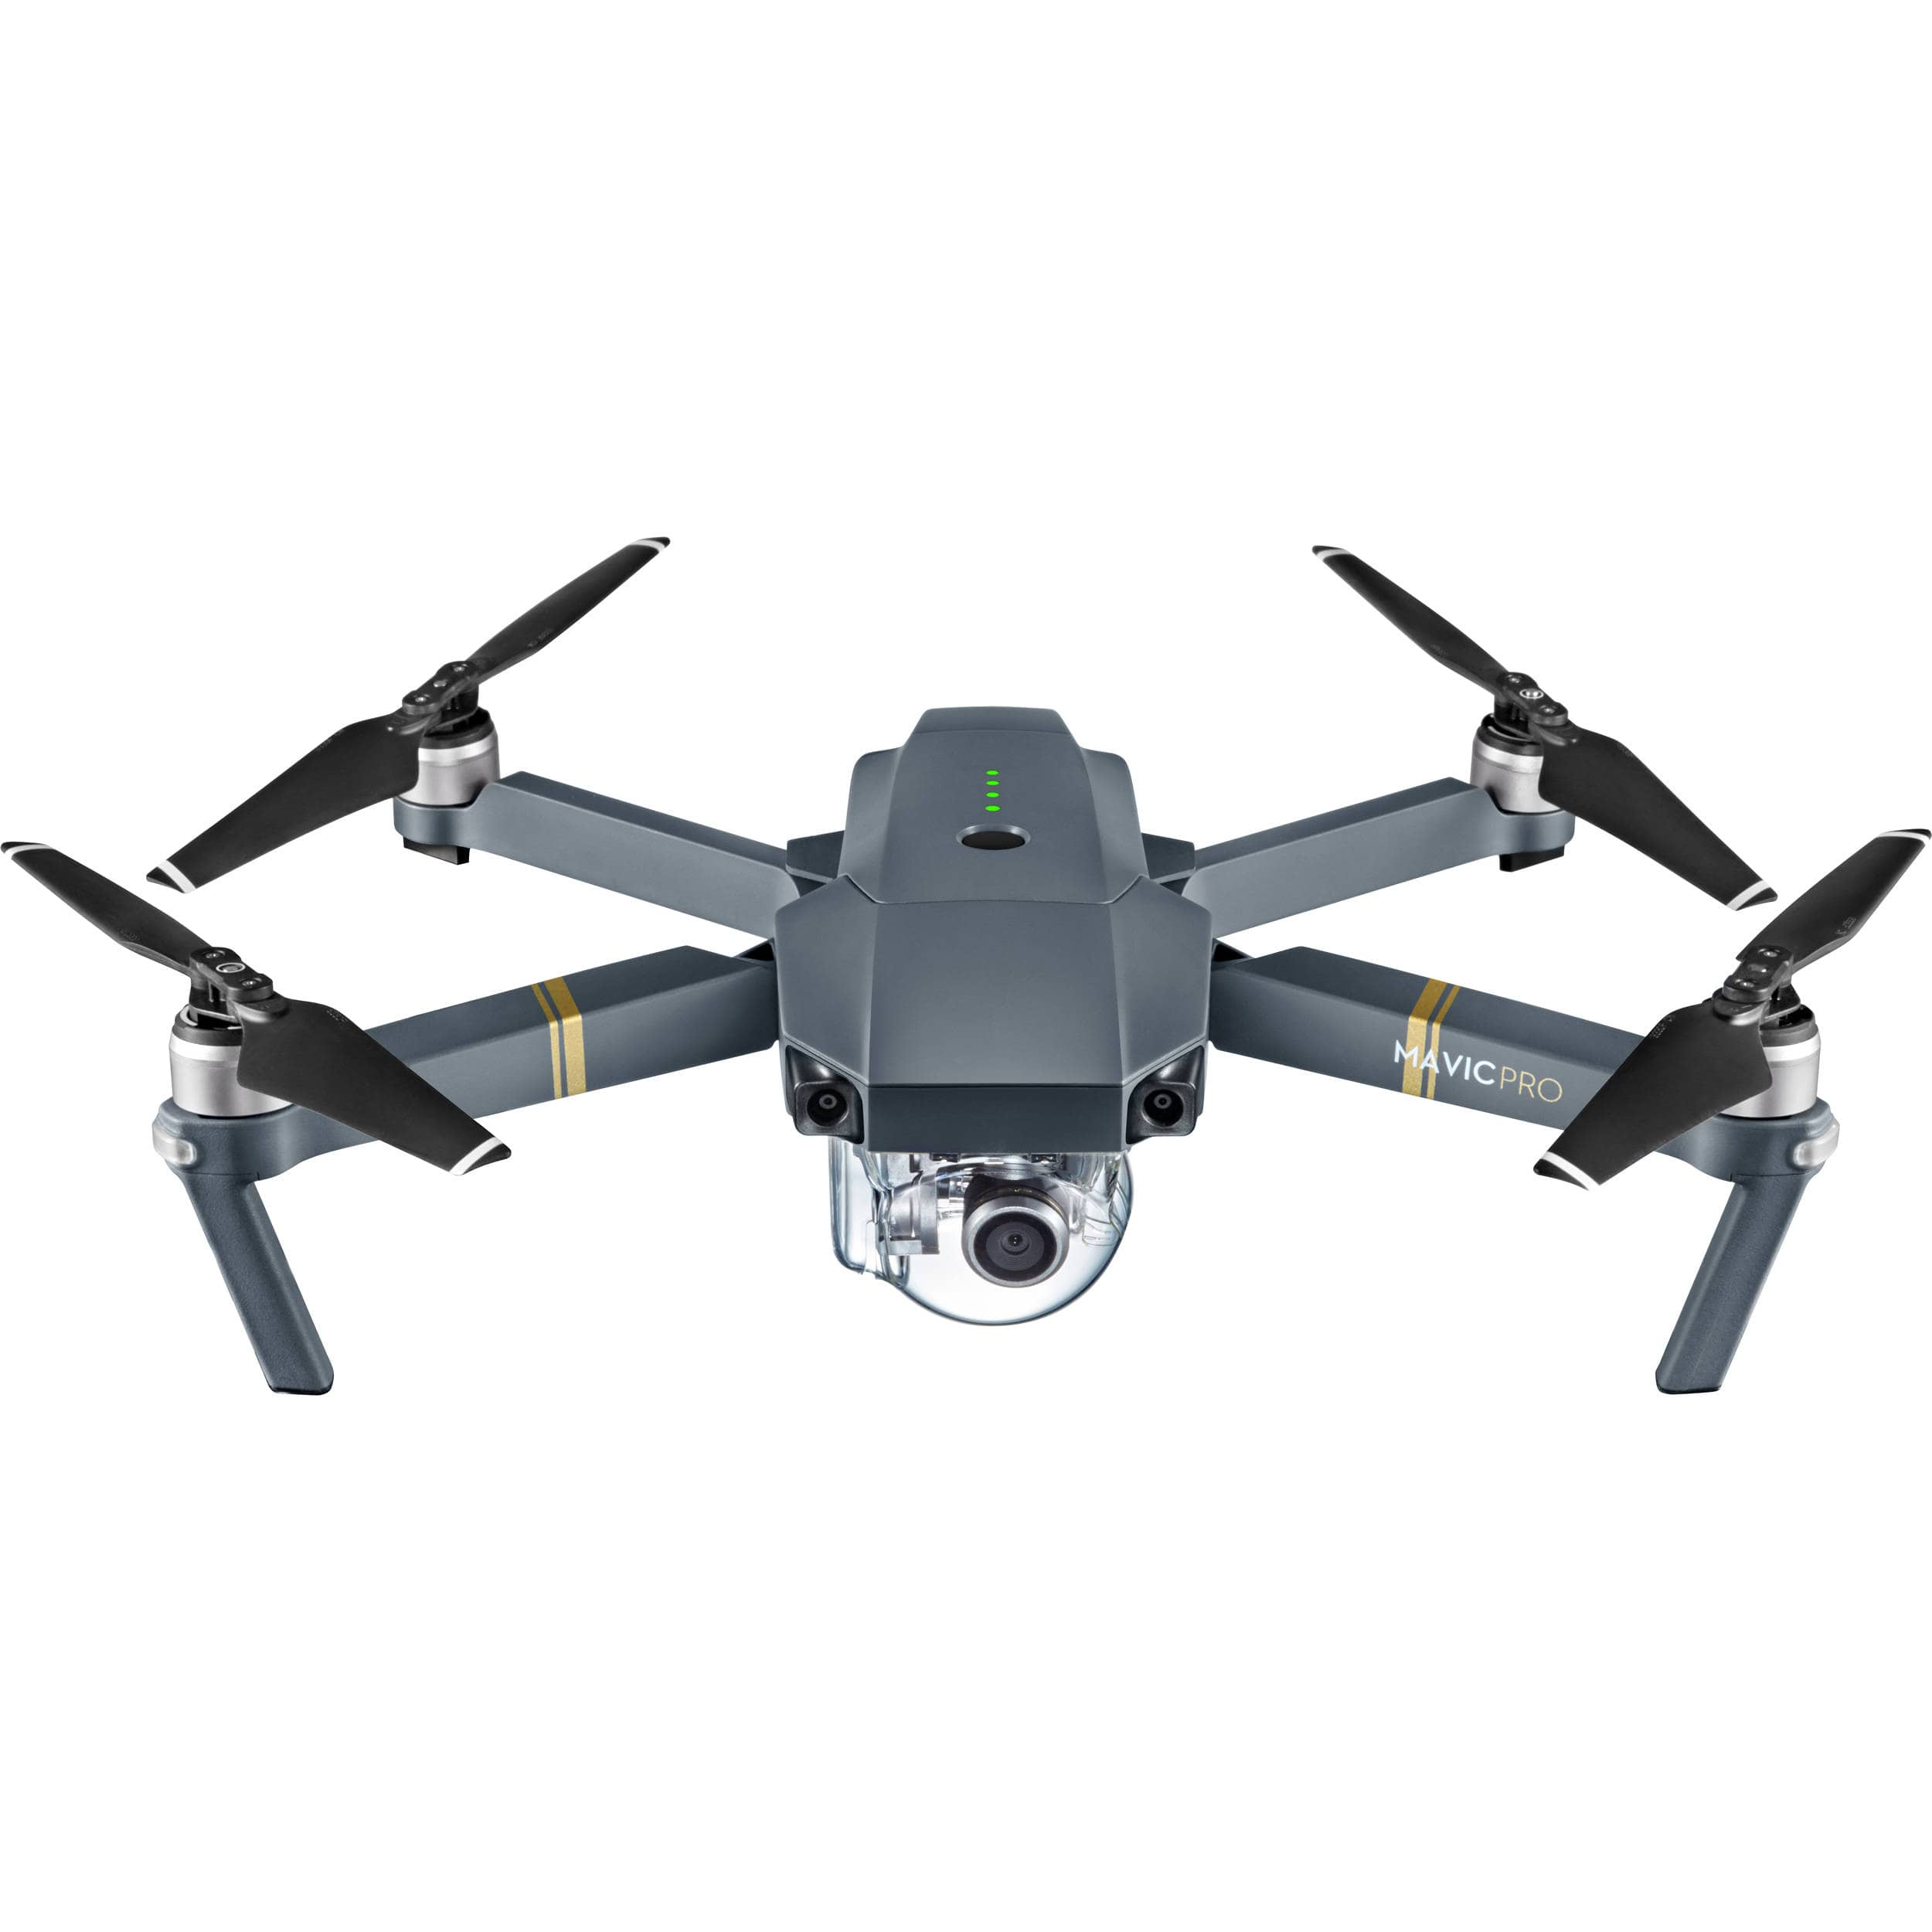 DJI Mavic Pro Drone with Remote Controller for $849 (save $150) + Free Shipping